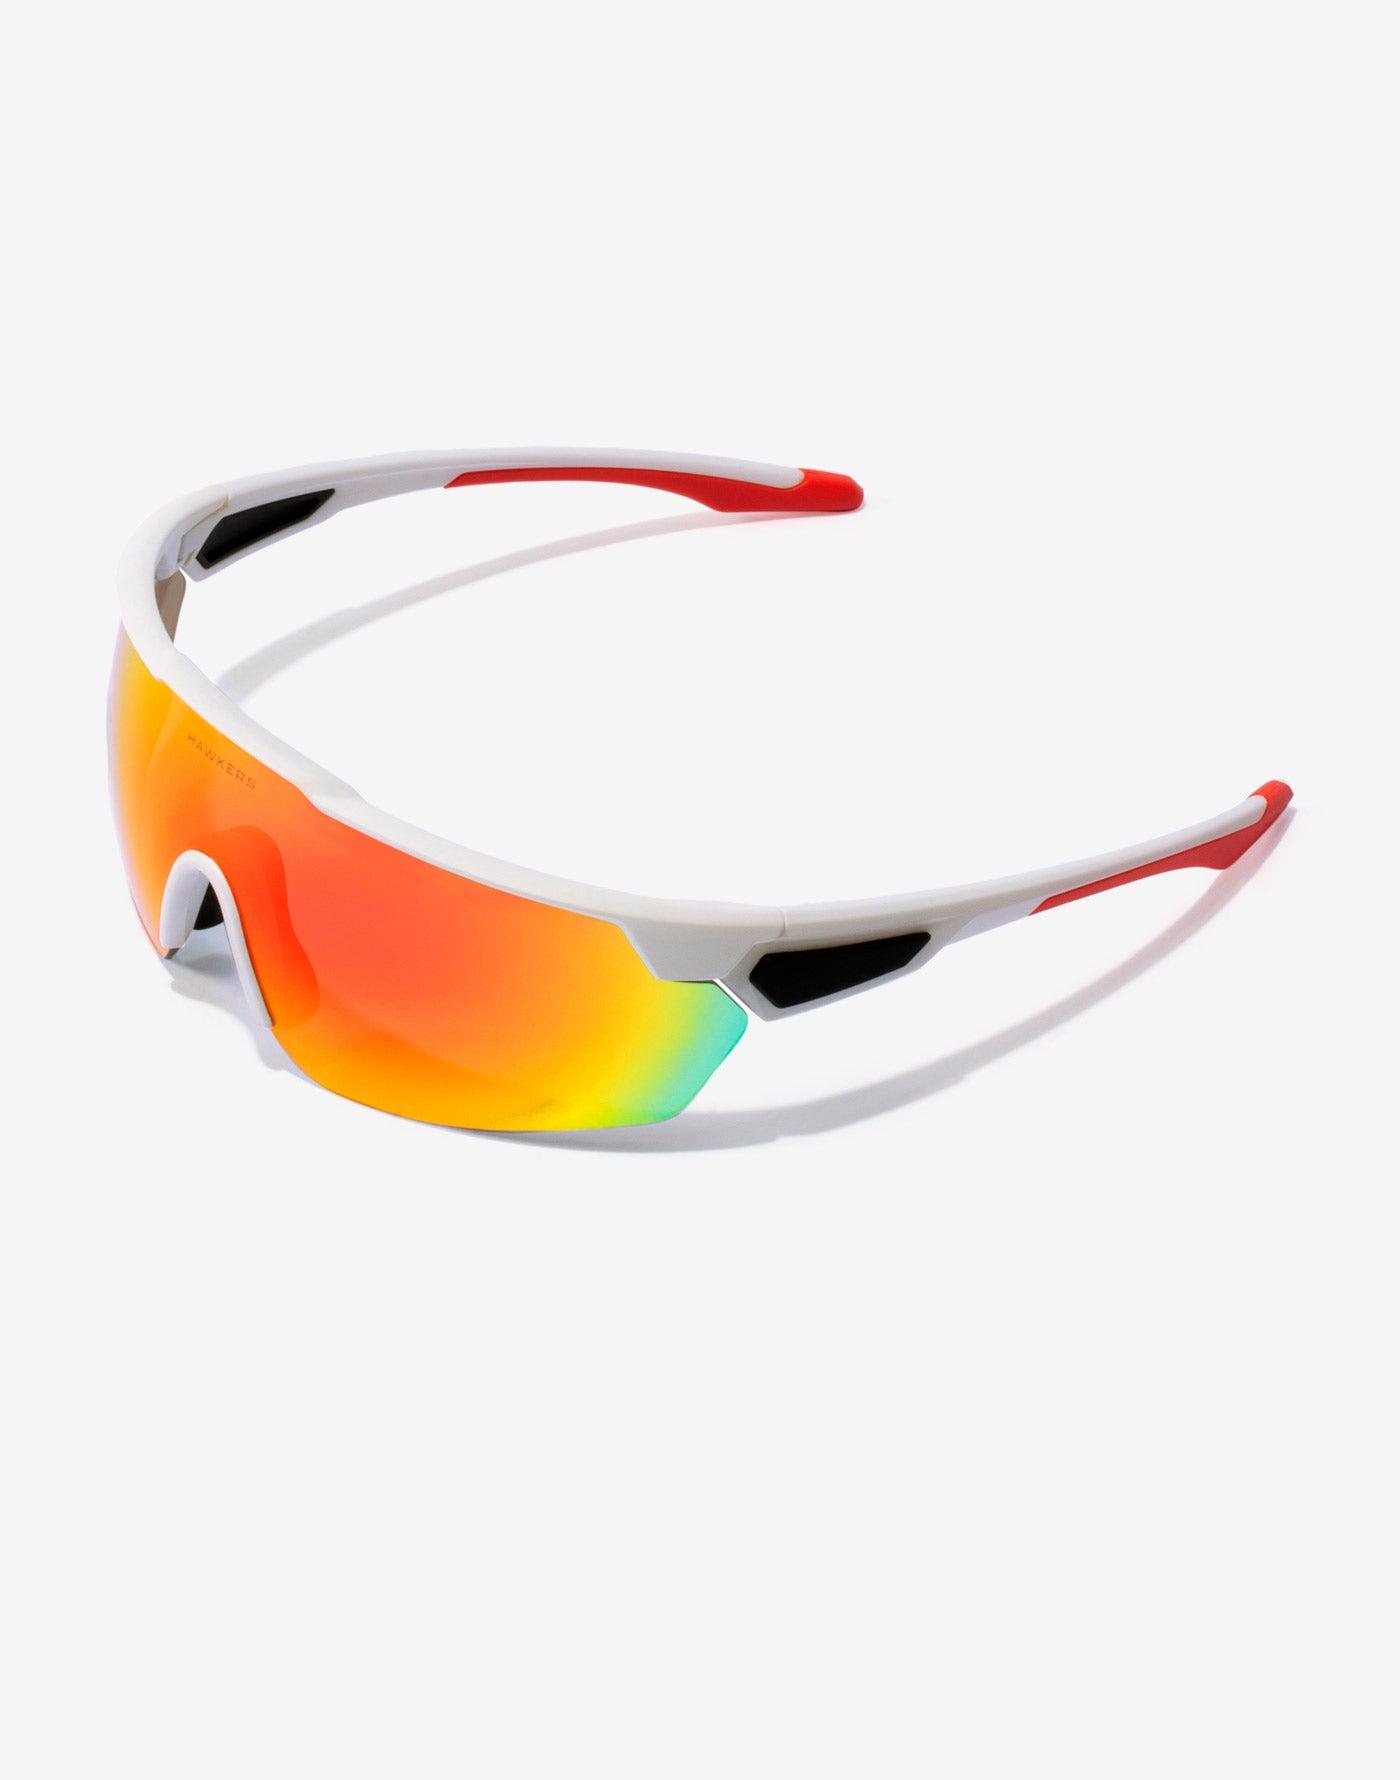 417d819c79 Gafas de sol ciclismo | White Cycling | Hawkers CO